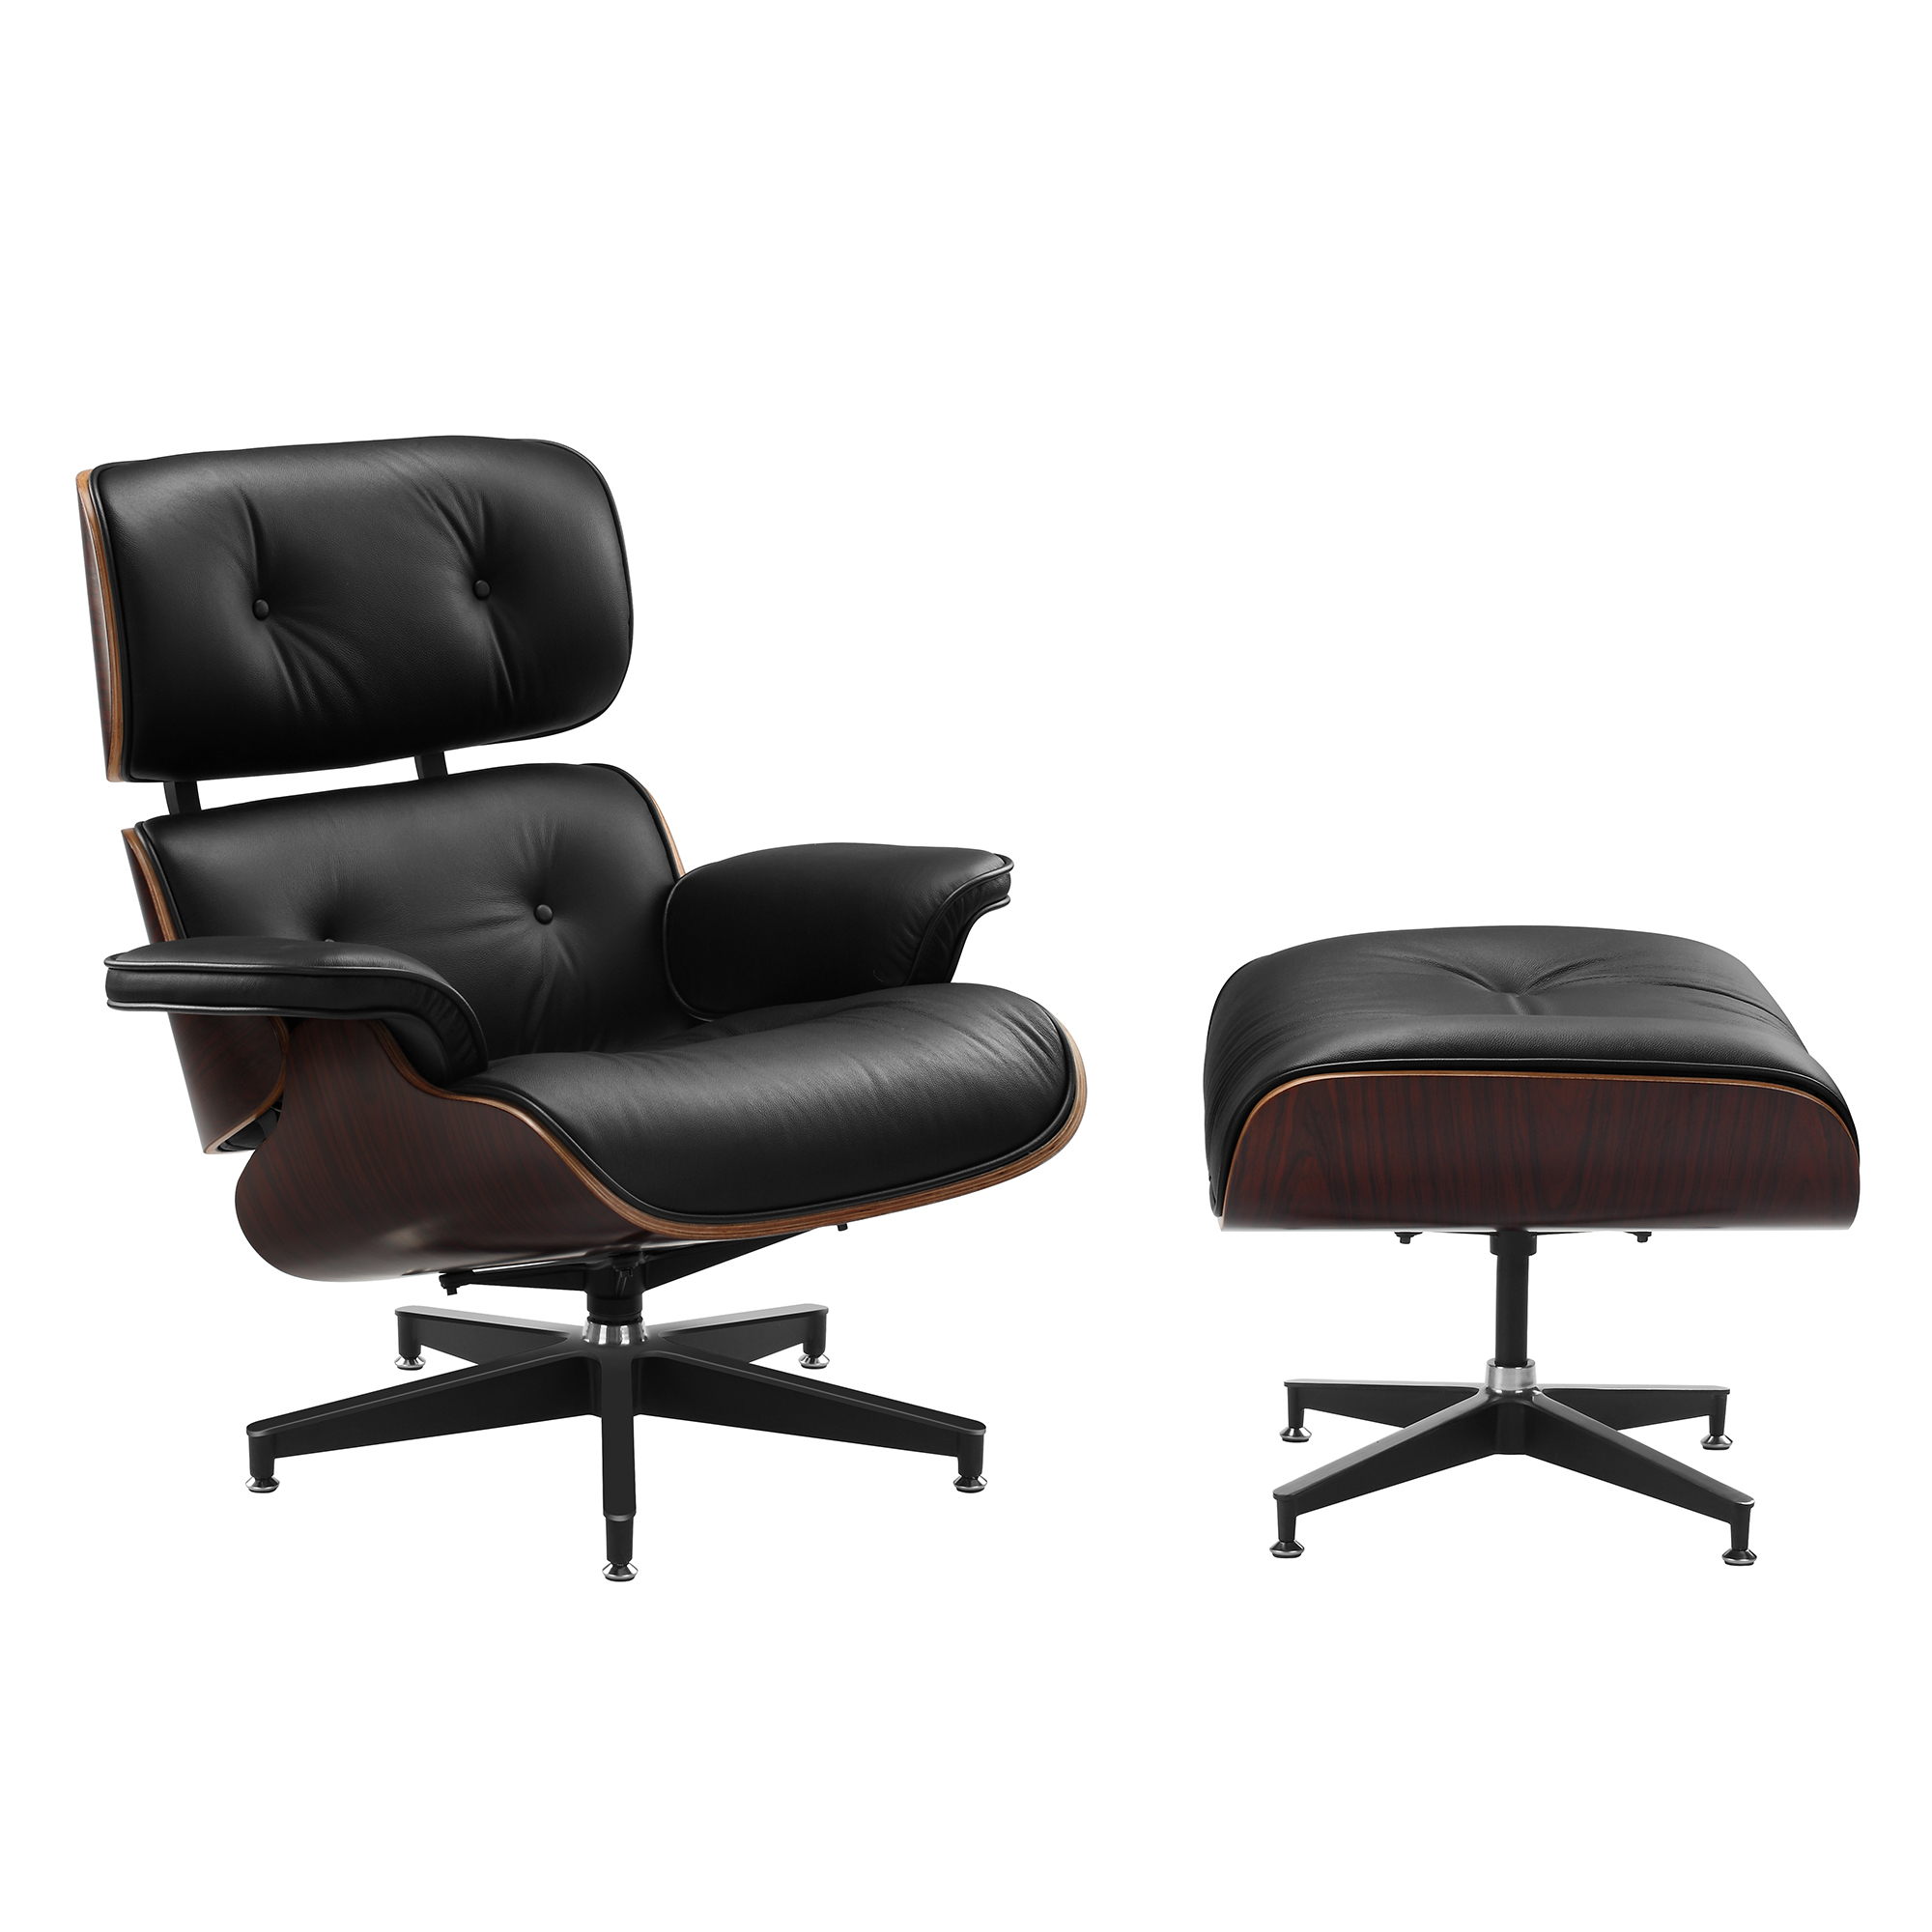 Eames Ottoman Eames Faux Leather Replica Lounge Chair Ottoman